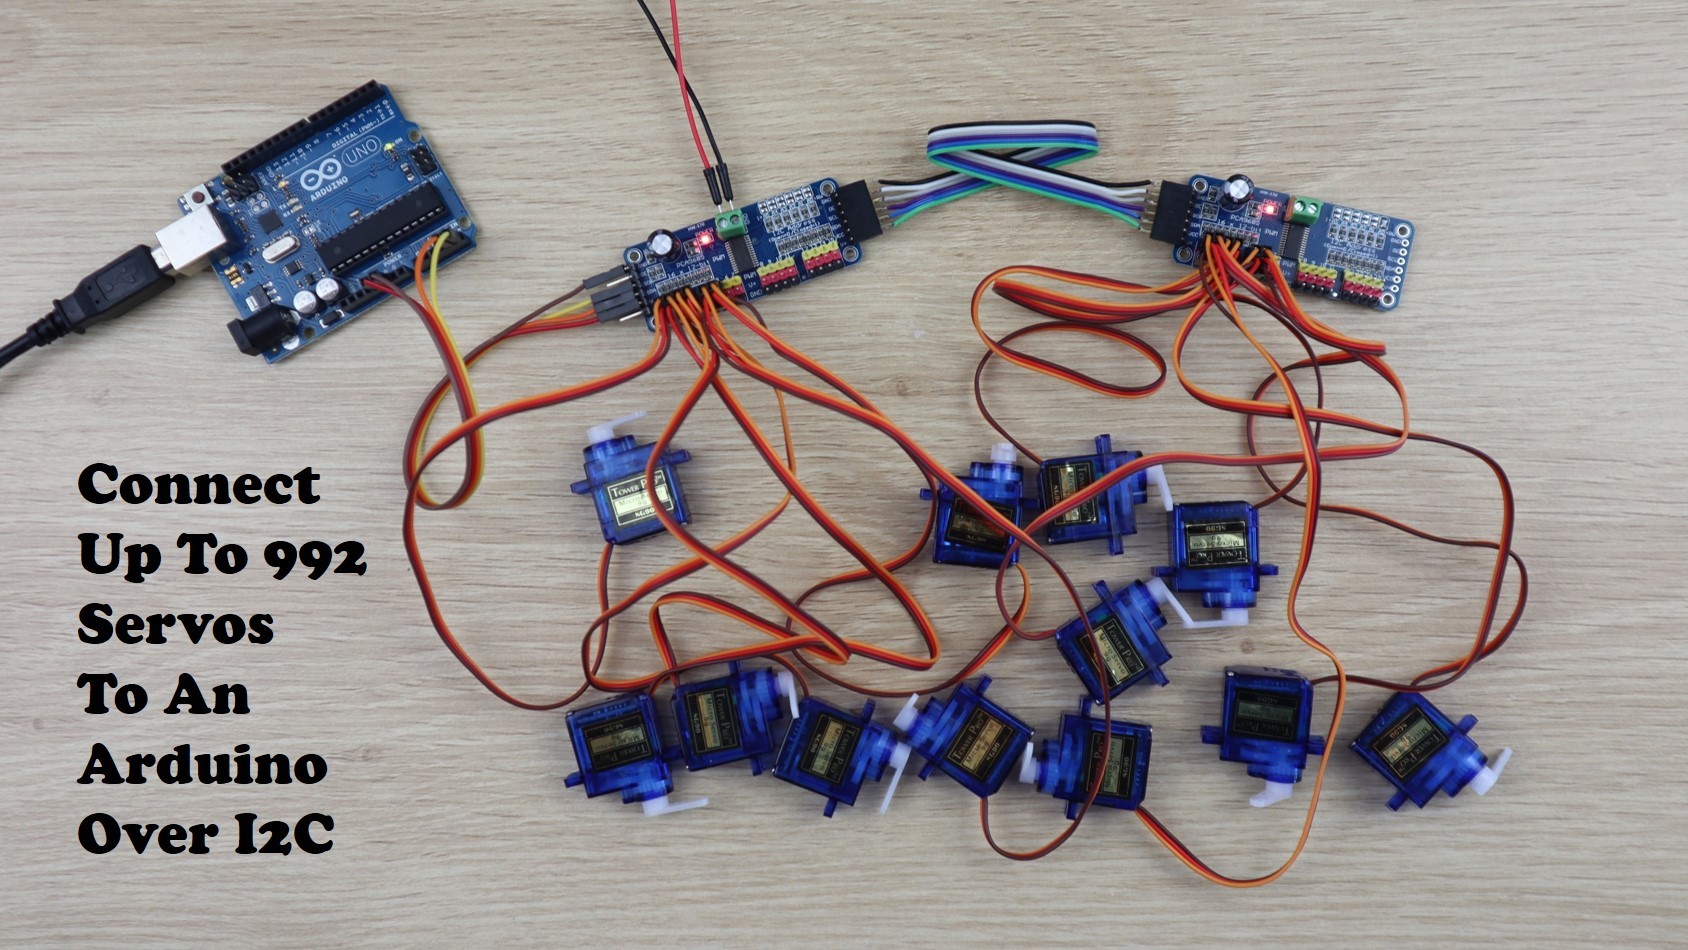 Connect Up To 992 Servos To An Arduino, Using Just 2 Pins